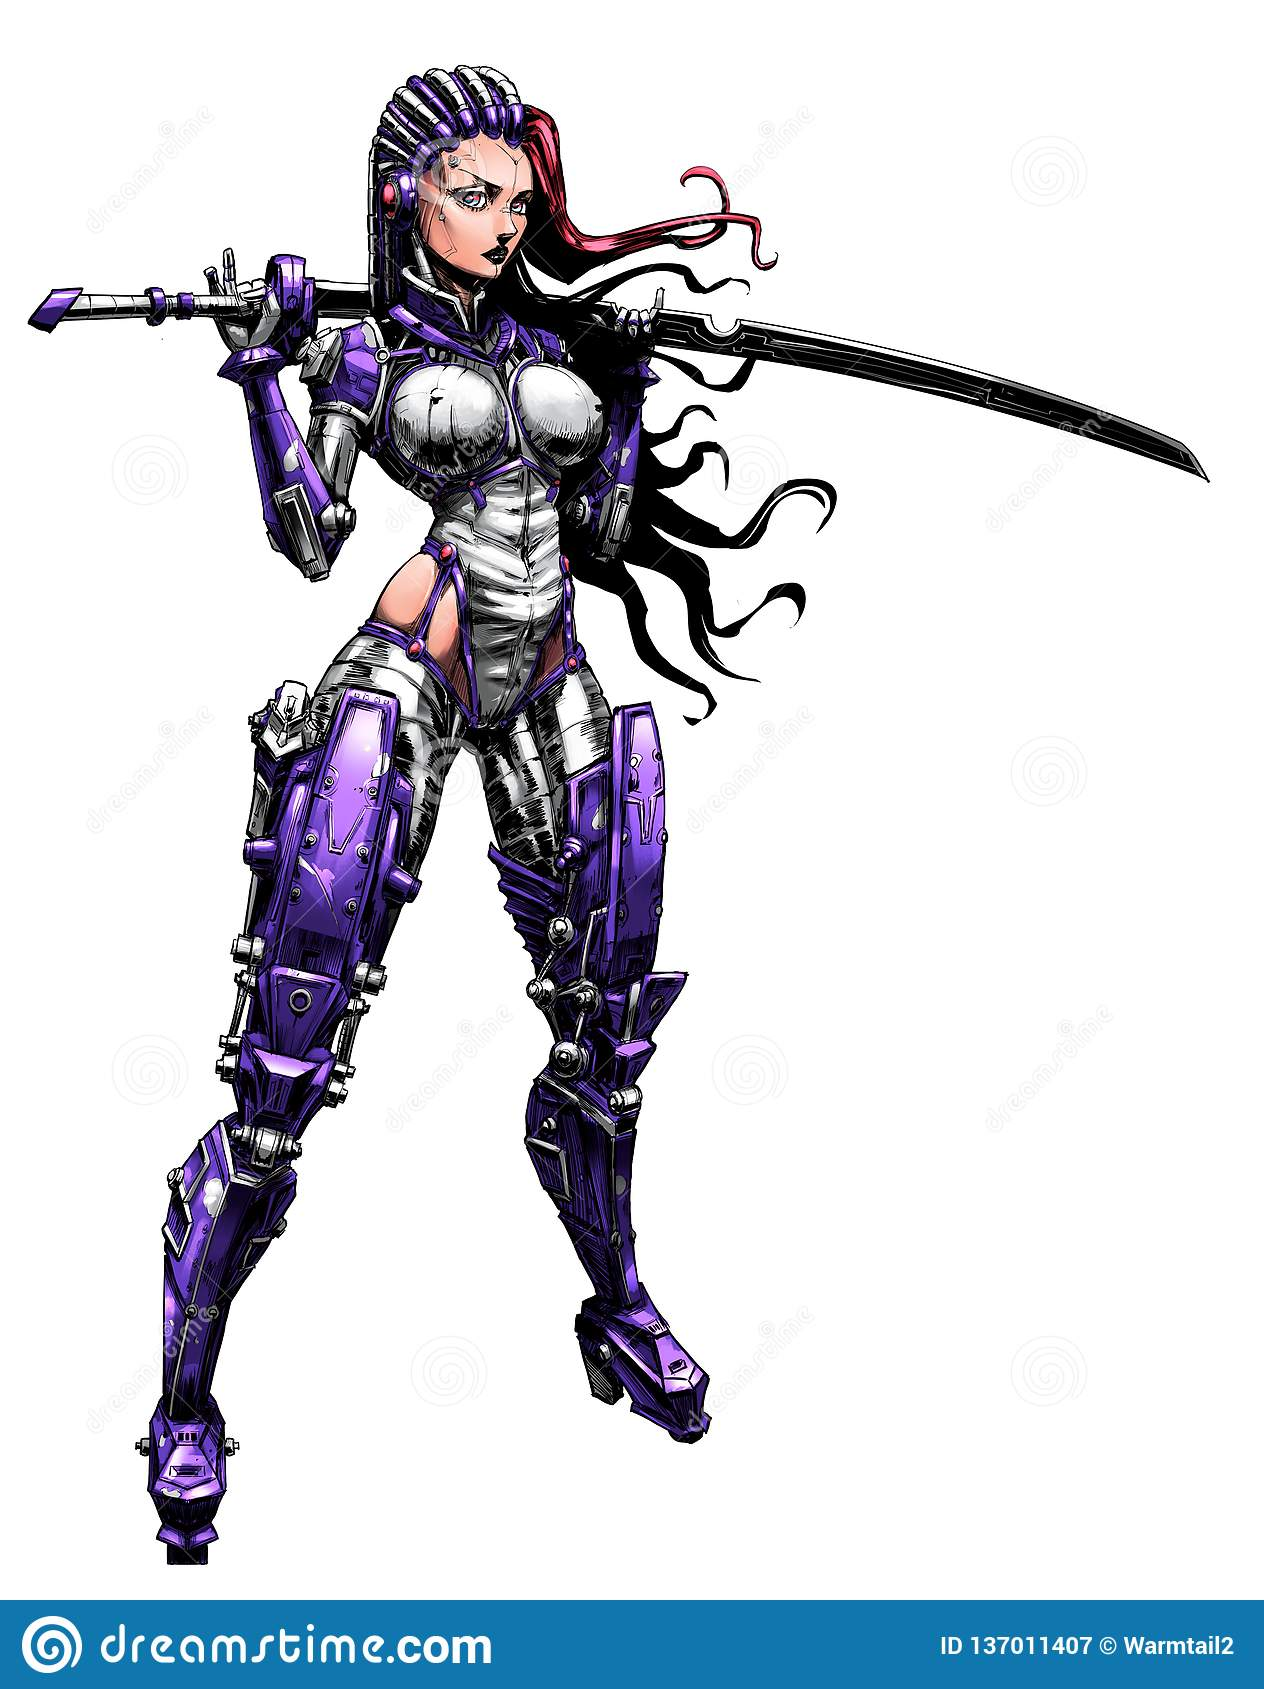 Beautiful cyborg girl